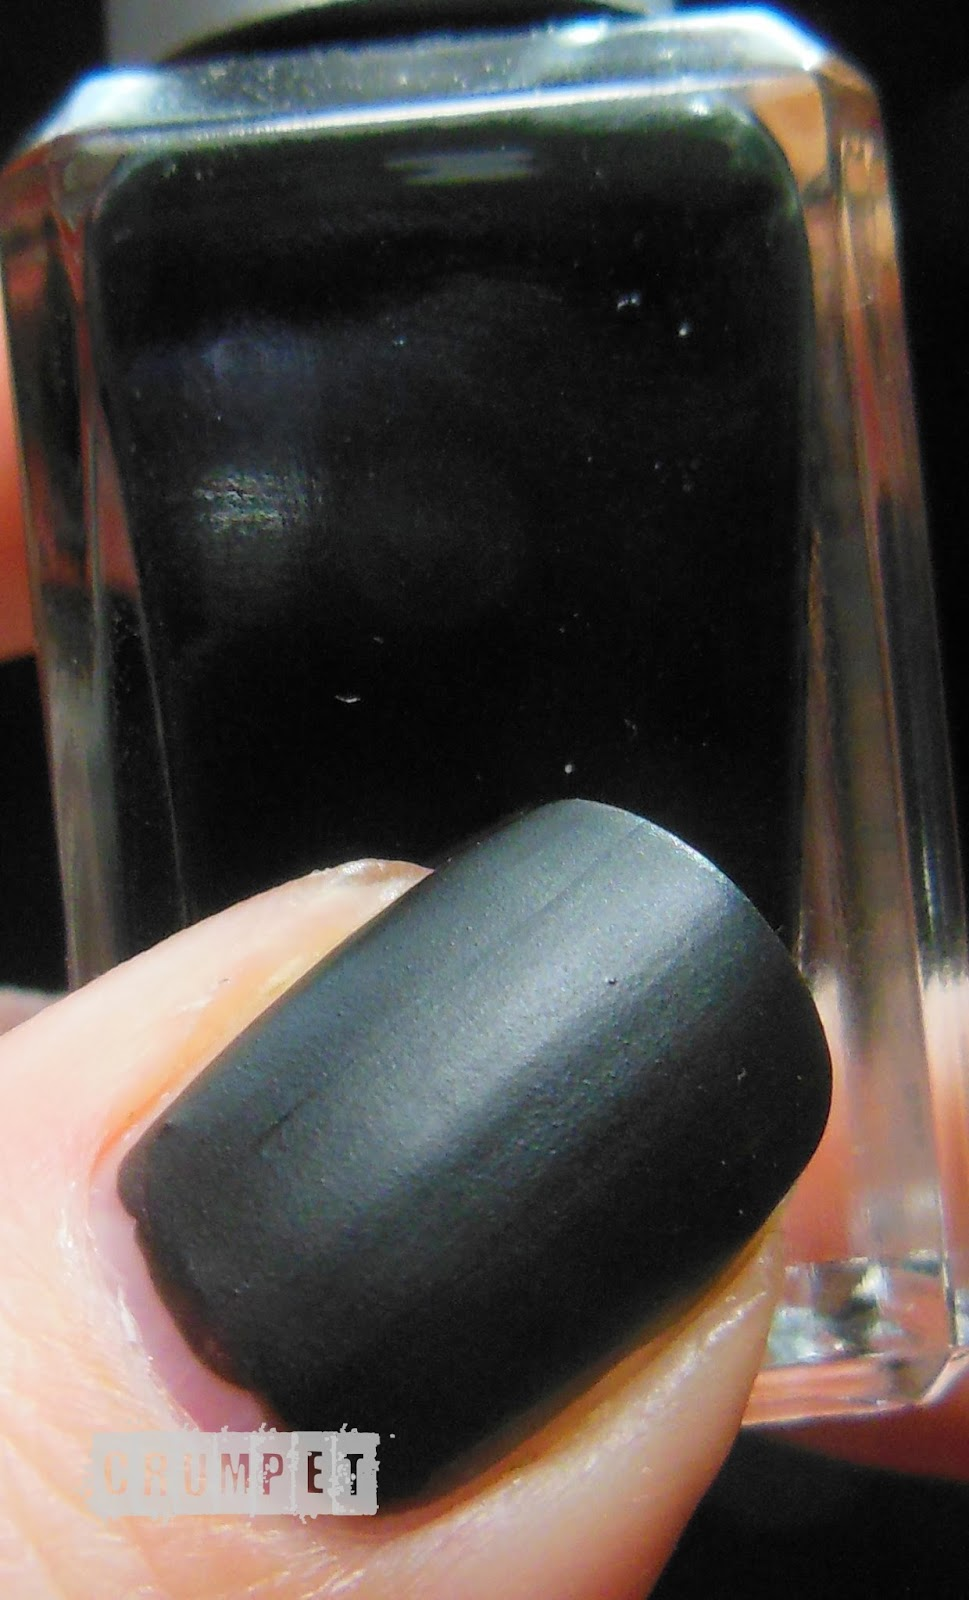 The Crumpet: Crumpet Reviews - Barry M The MATTE Nail Paint Collection